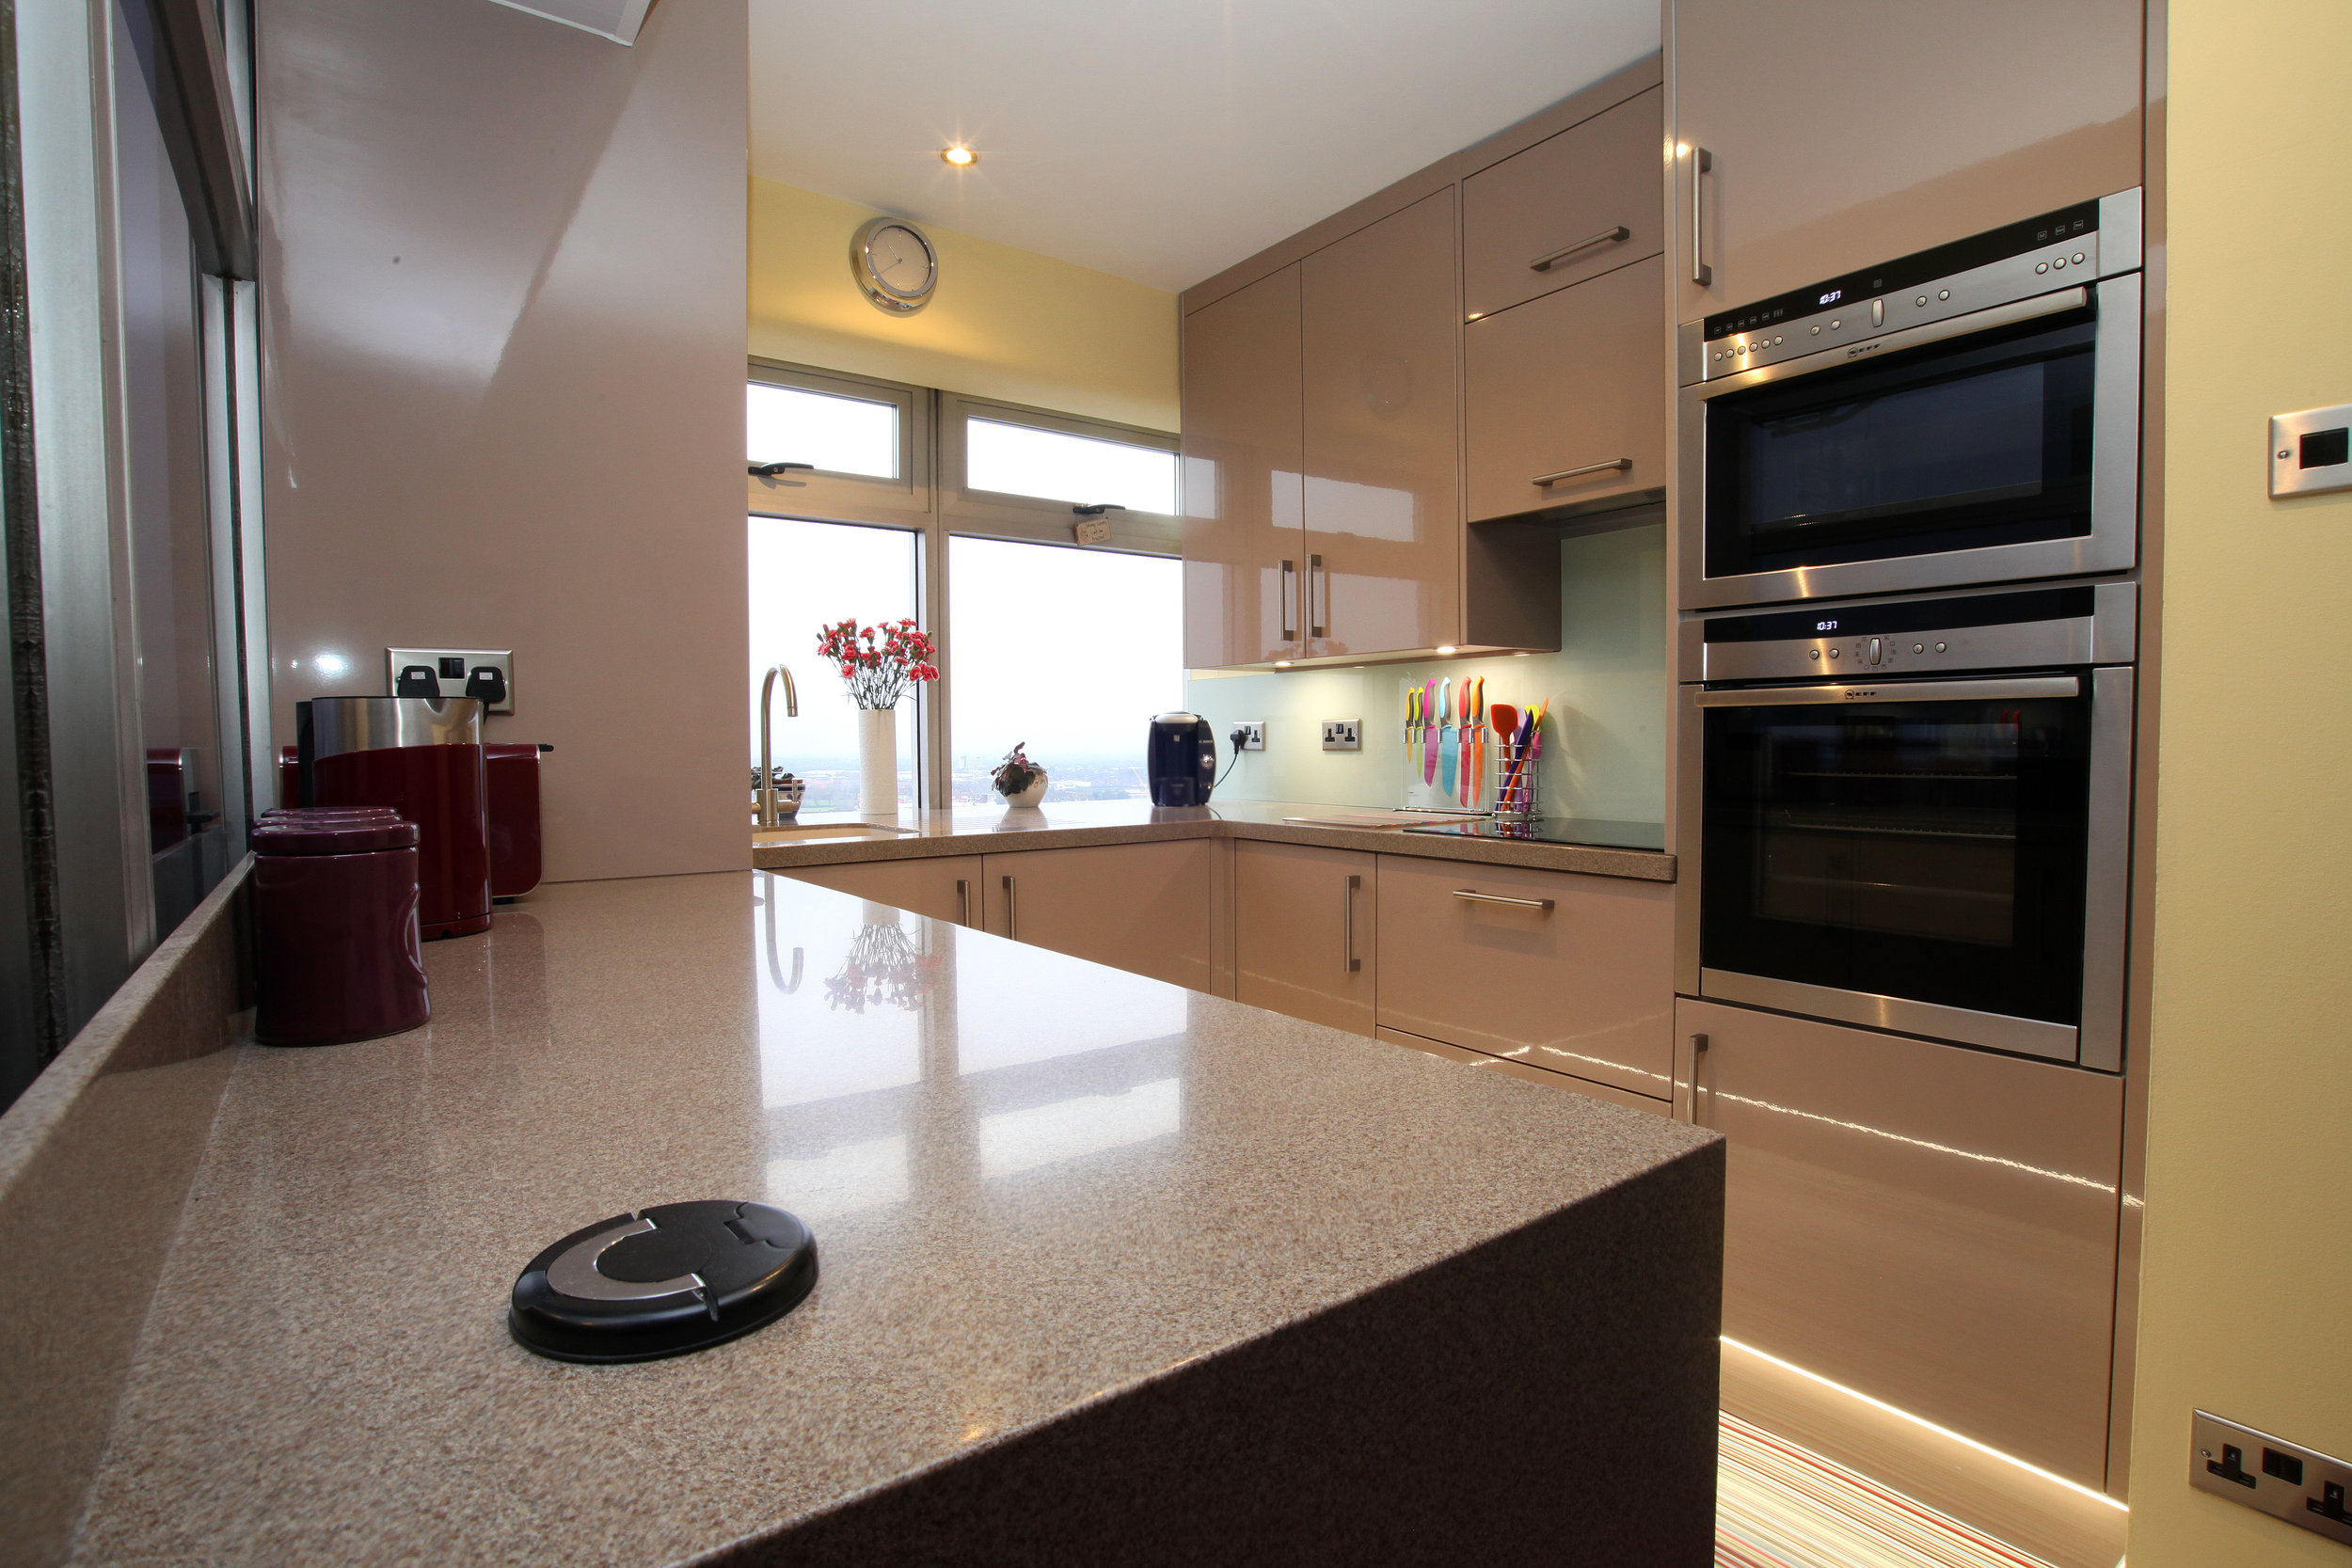 Fabricated by Barbury Kitchens